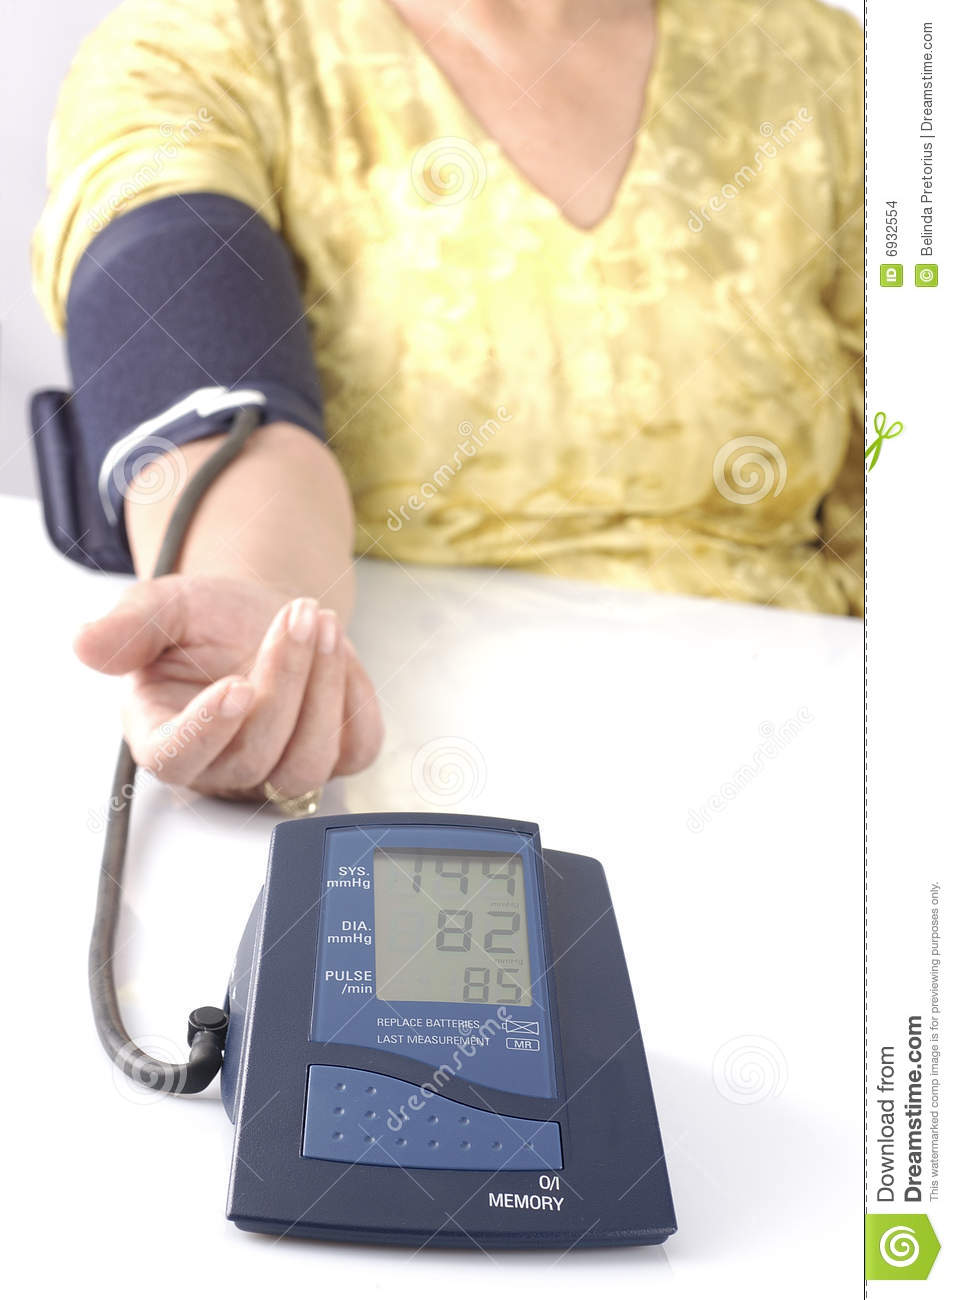 how to take a blood pressure test